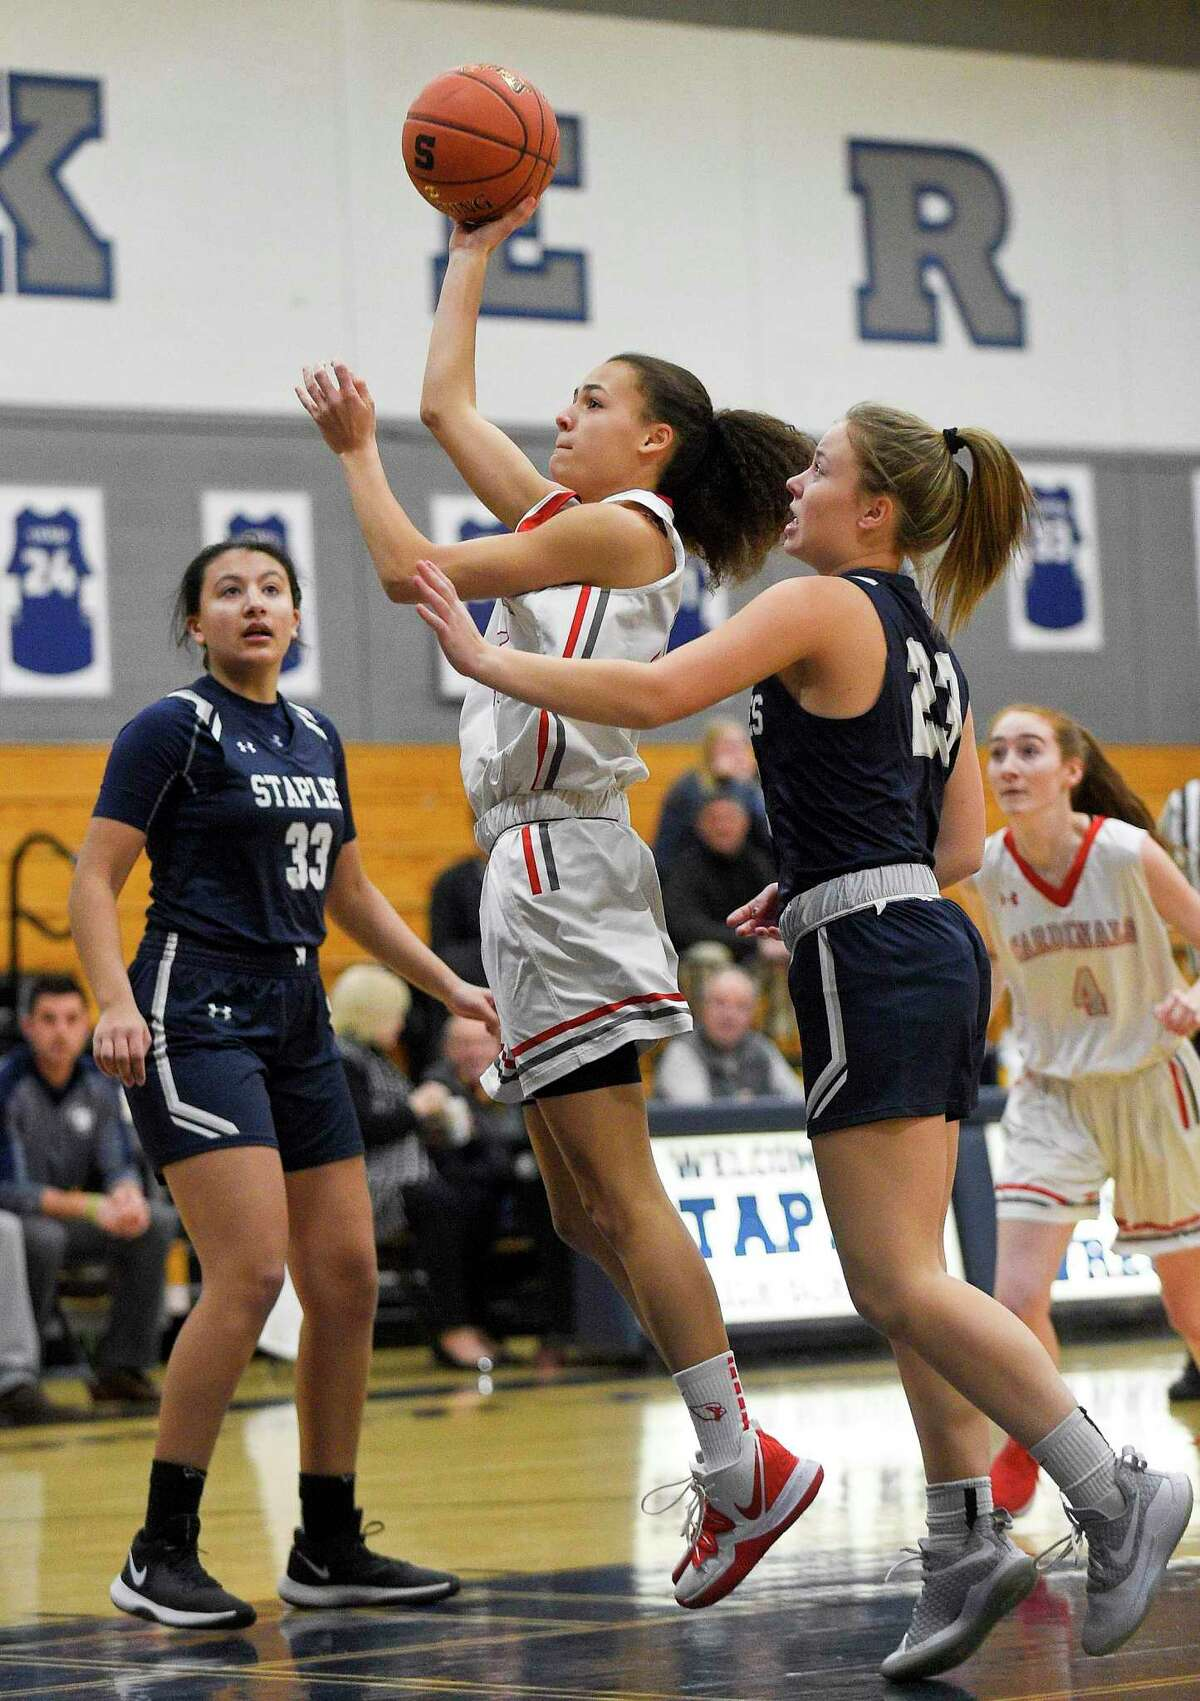 Greenwich's Makenzie Nelson (45) puts up a shot between Staples' Marley Lopez (33) and Abigail Cozzi (23) during a game in January.